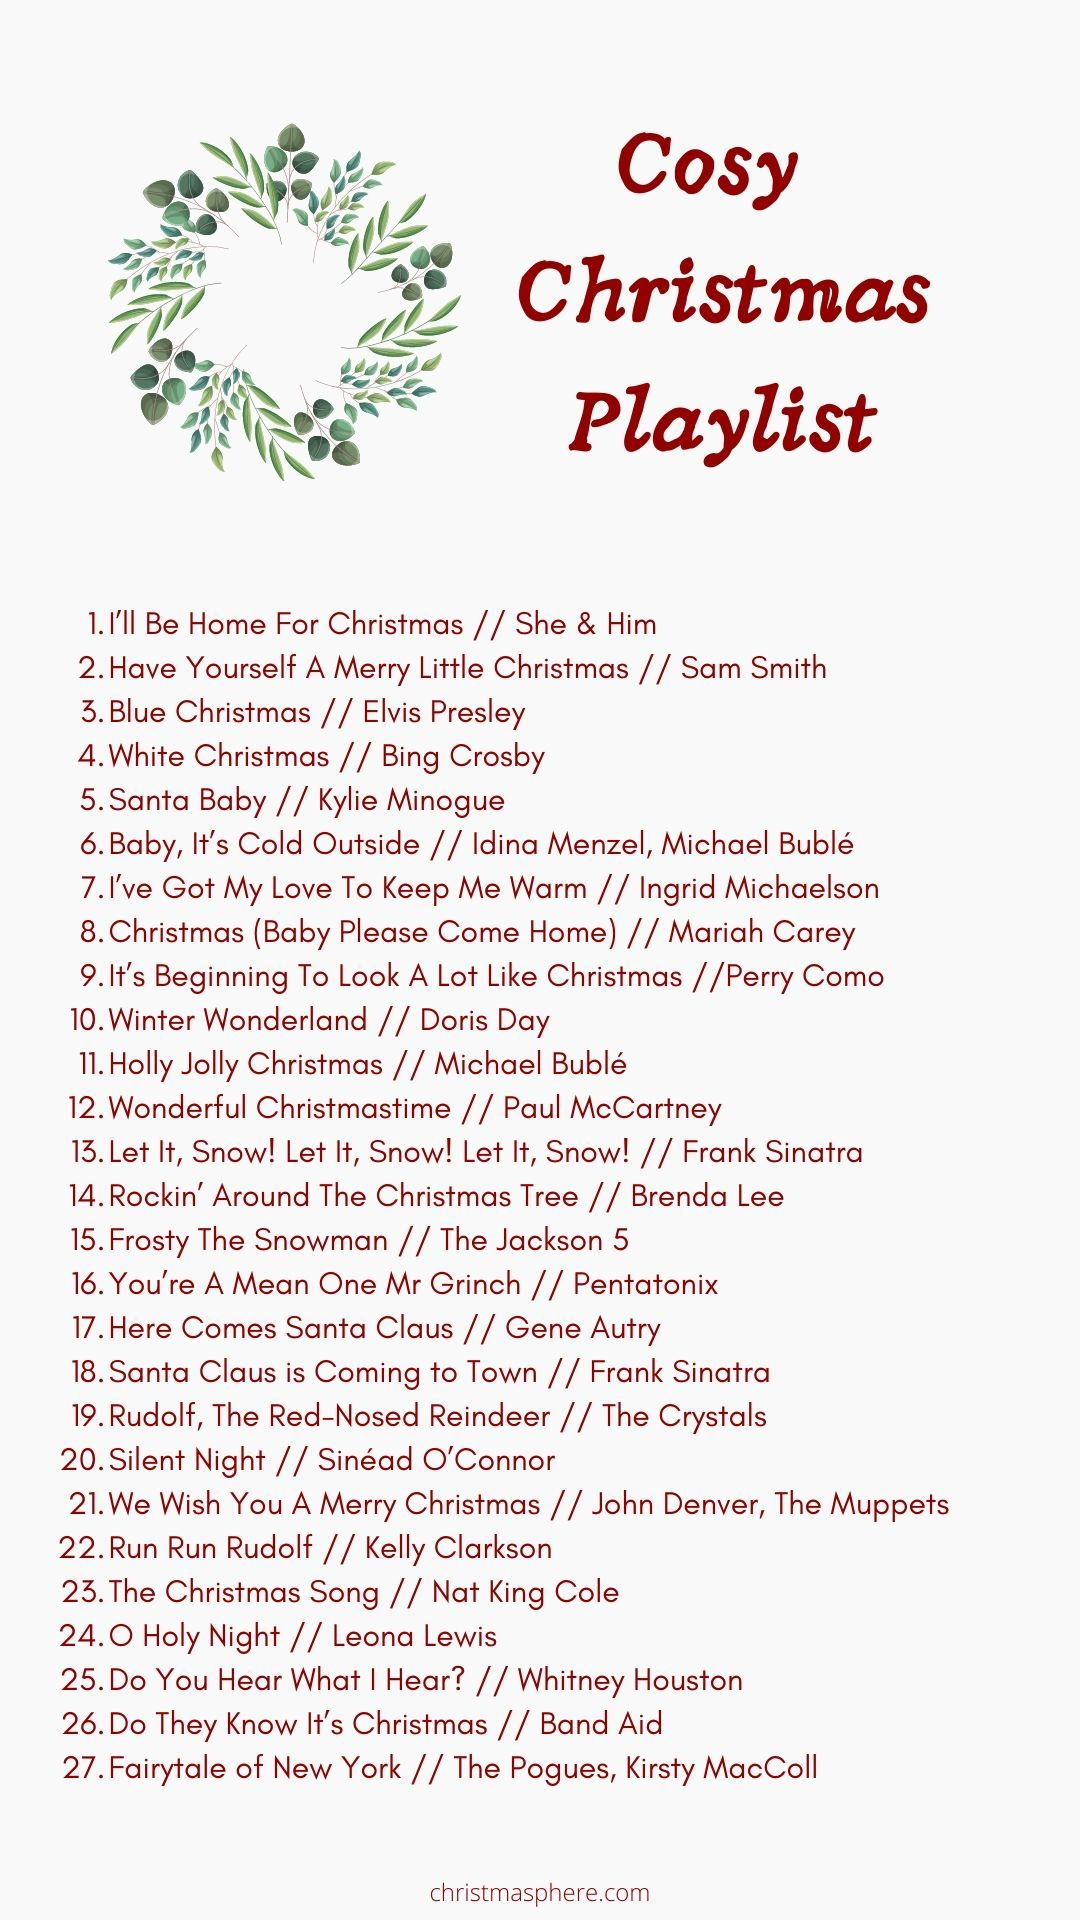 Cosy Christmas Playlist Christmas Hits To Cosy Up To In 2020 Christmas Playlist Cosy Christmas Christmas Songs Playlist